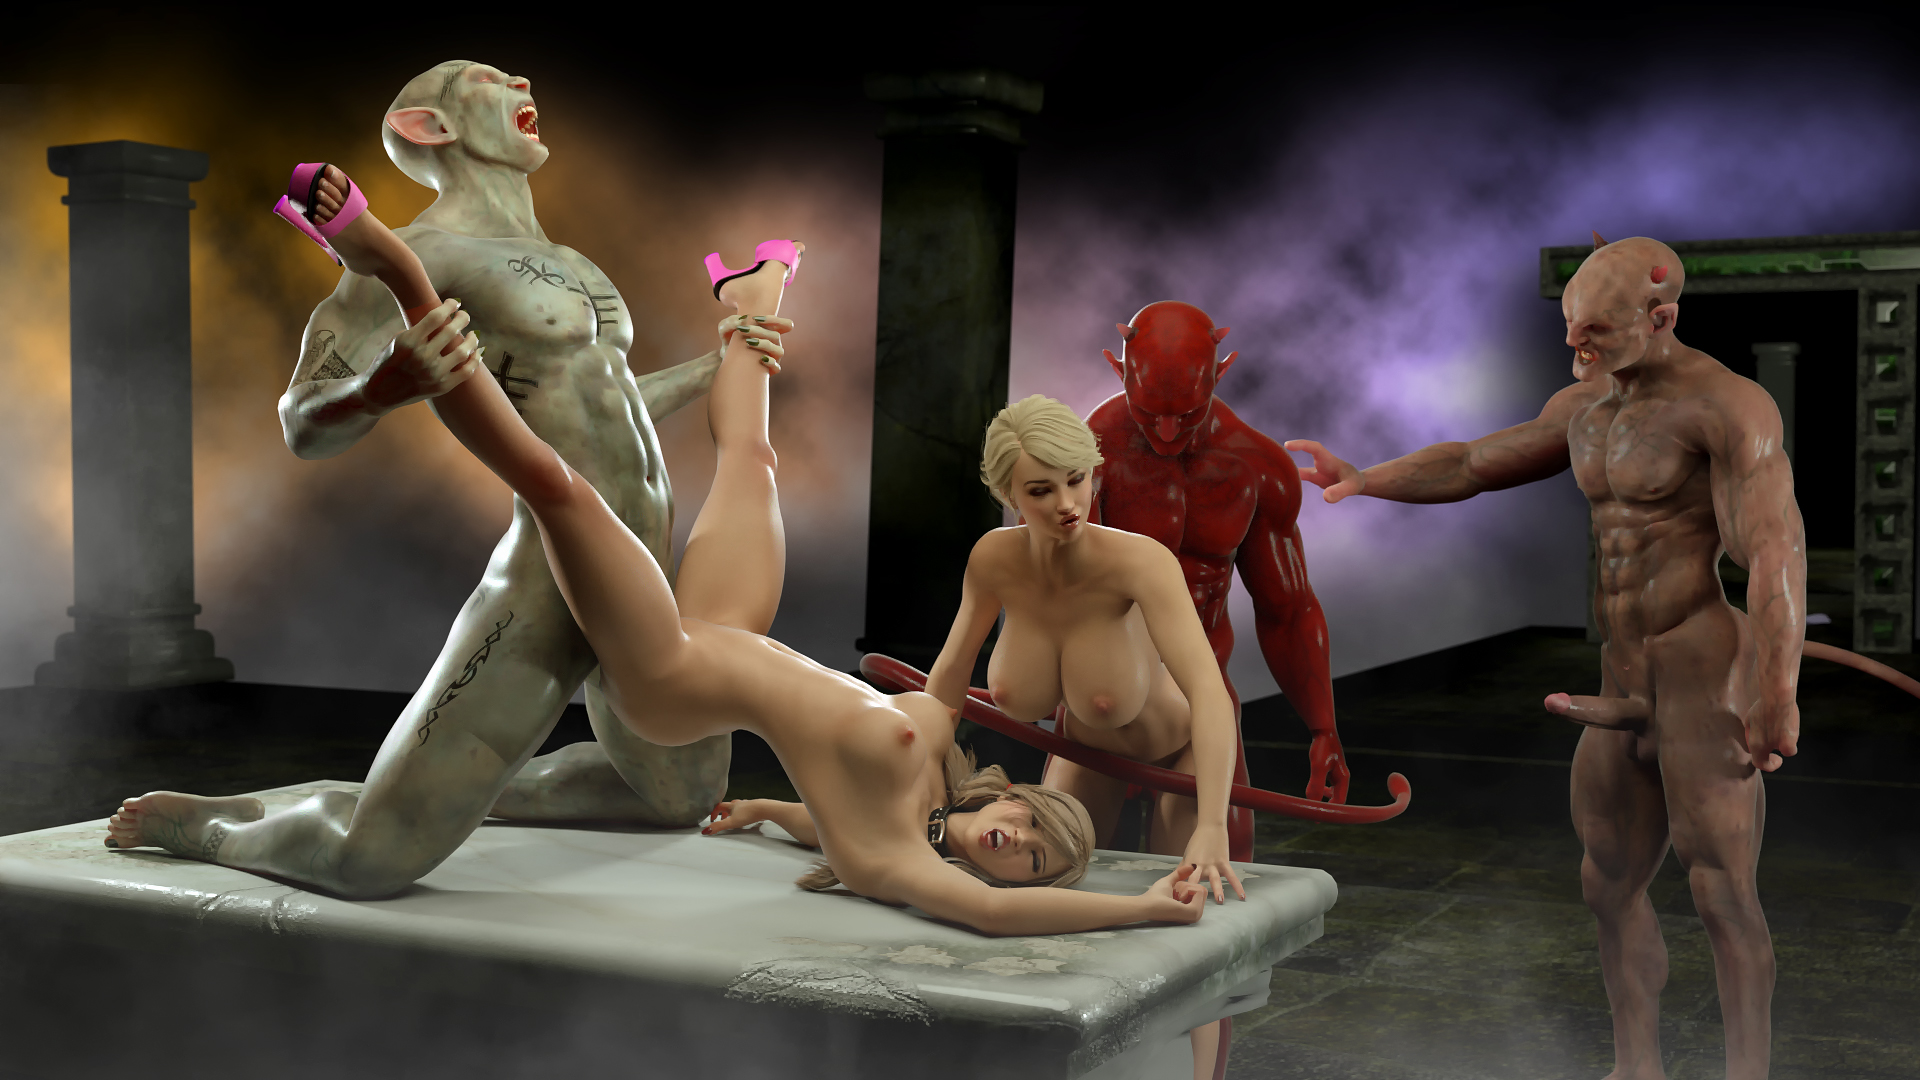 Demon gril porn adult gallery